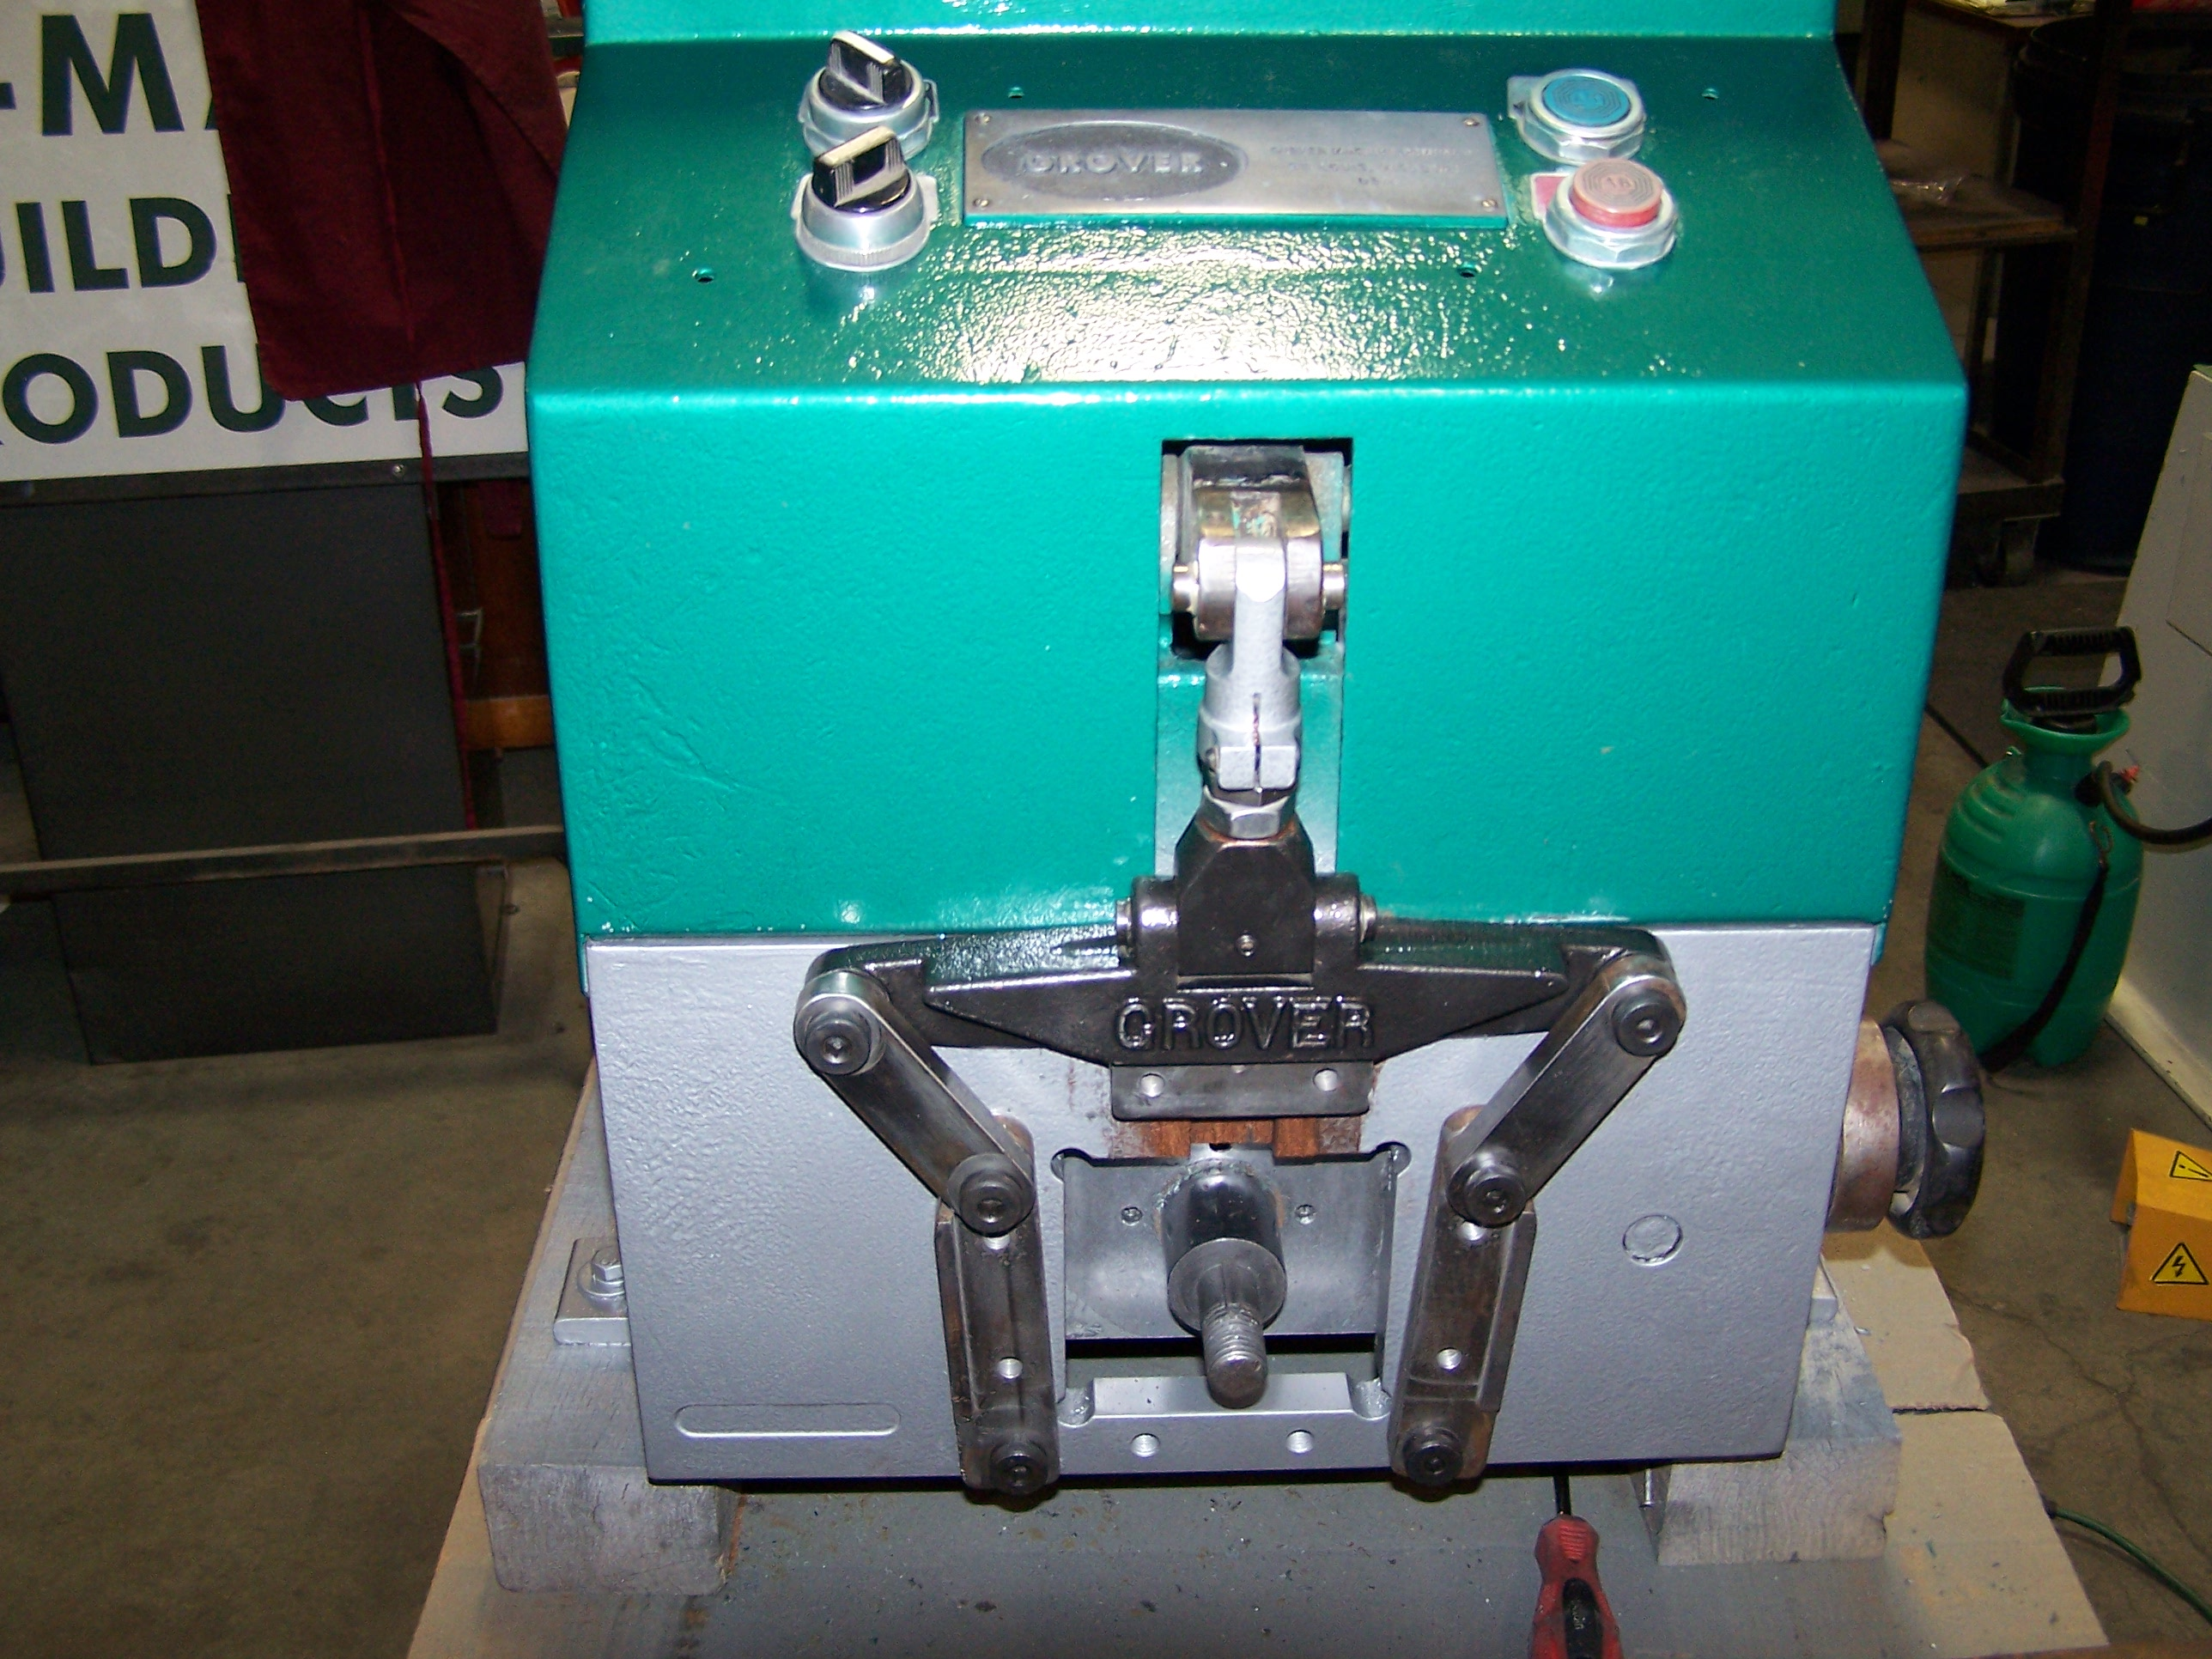 Used Grover 220 Elbow Forming Machine K Mar Building